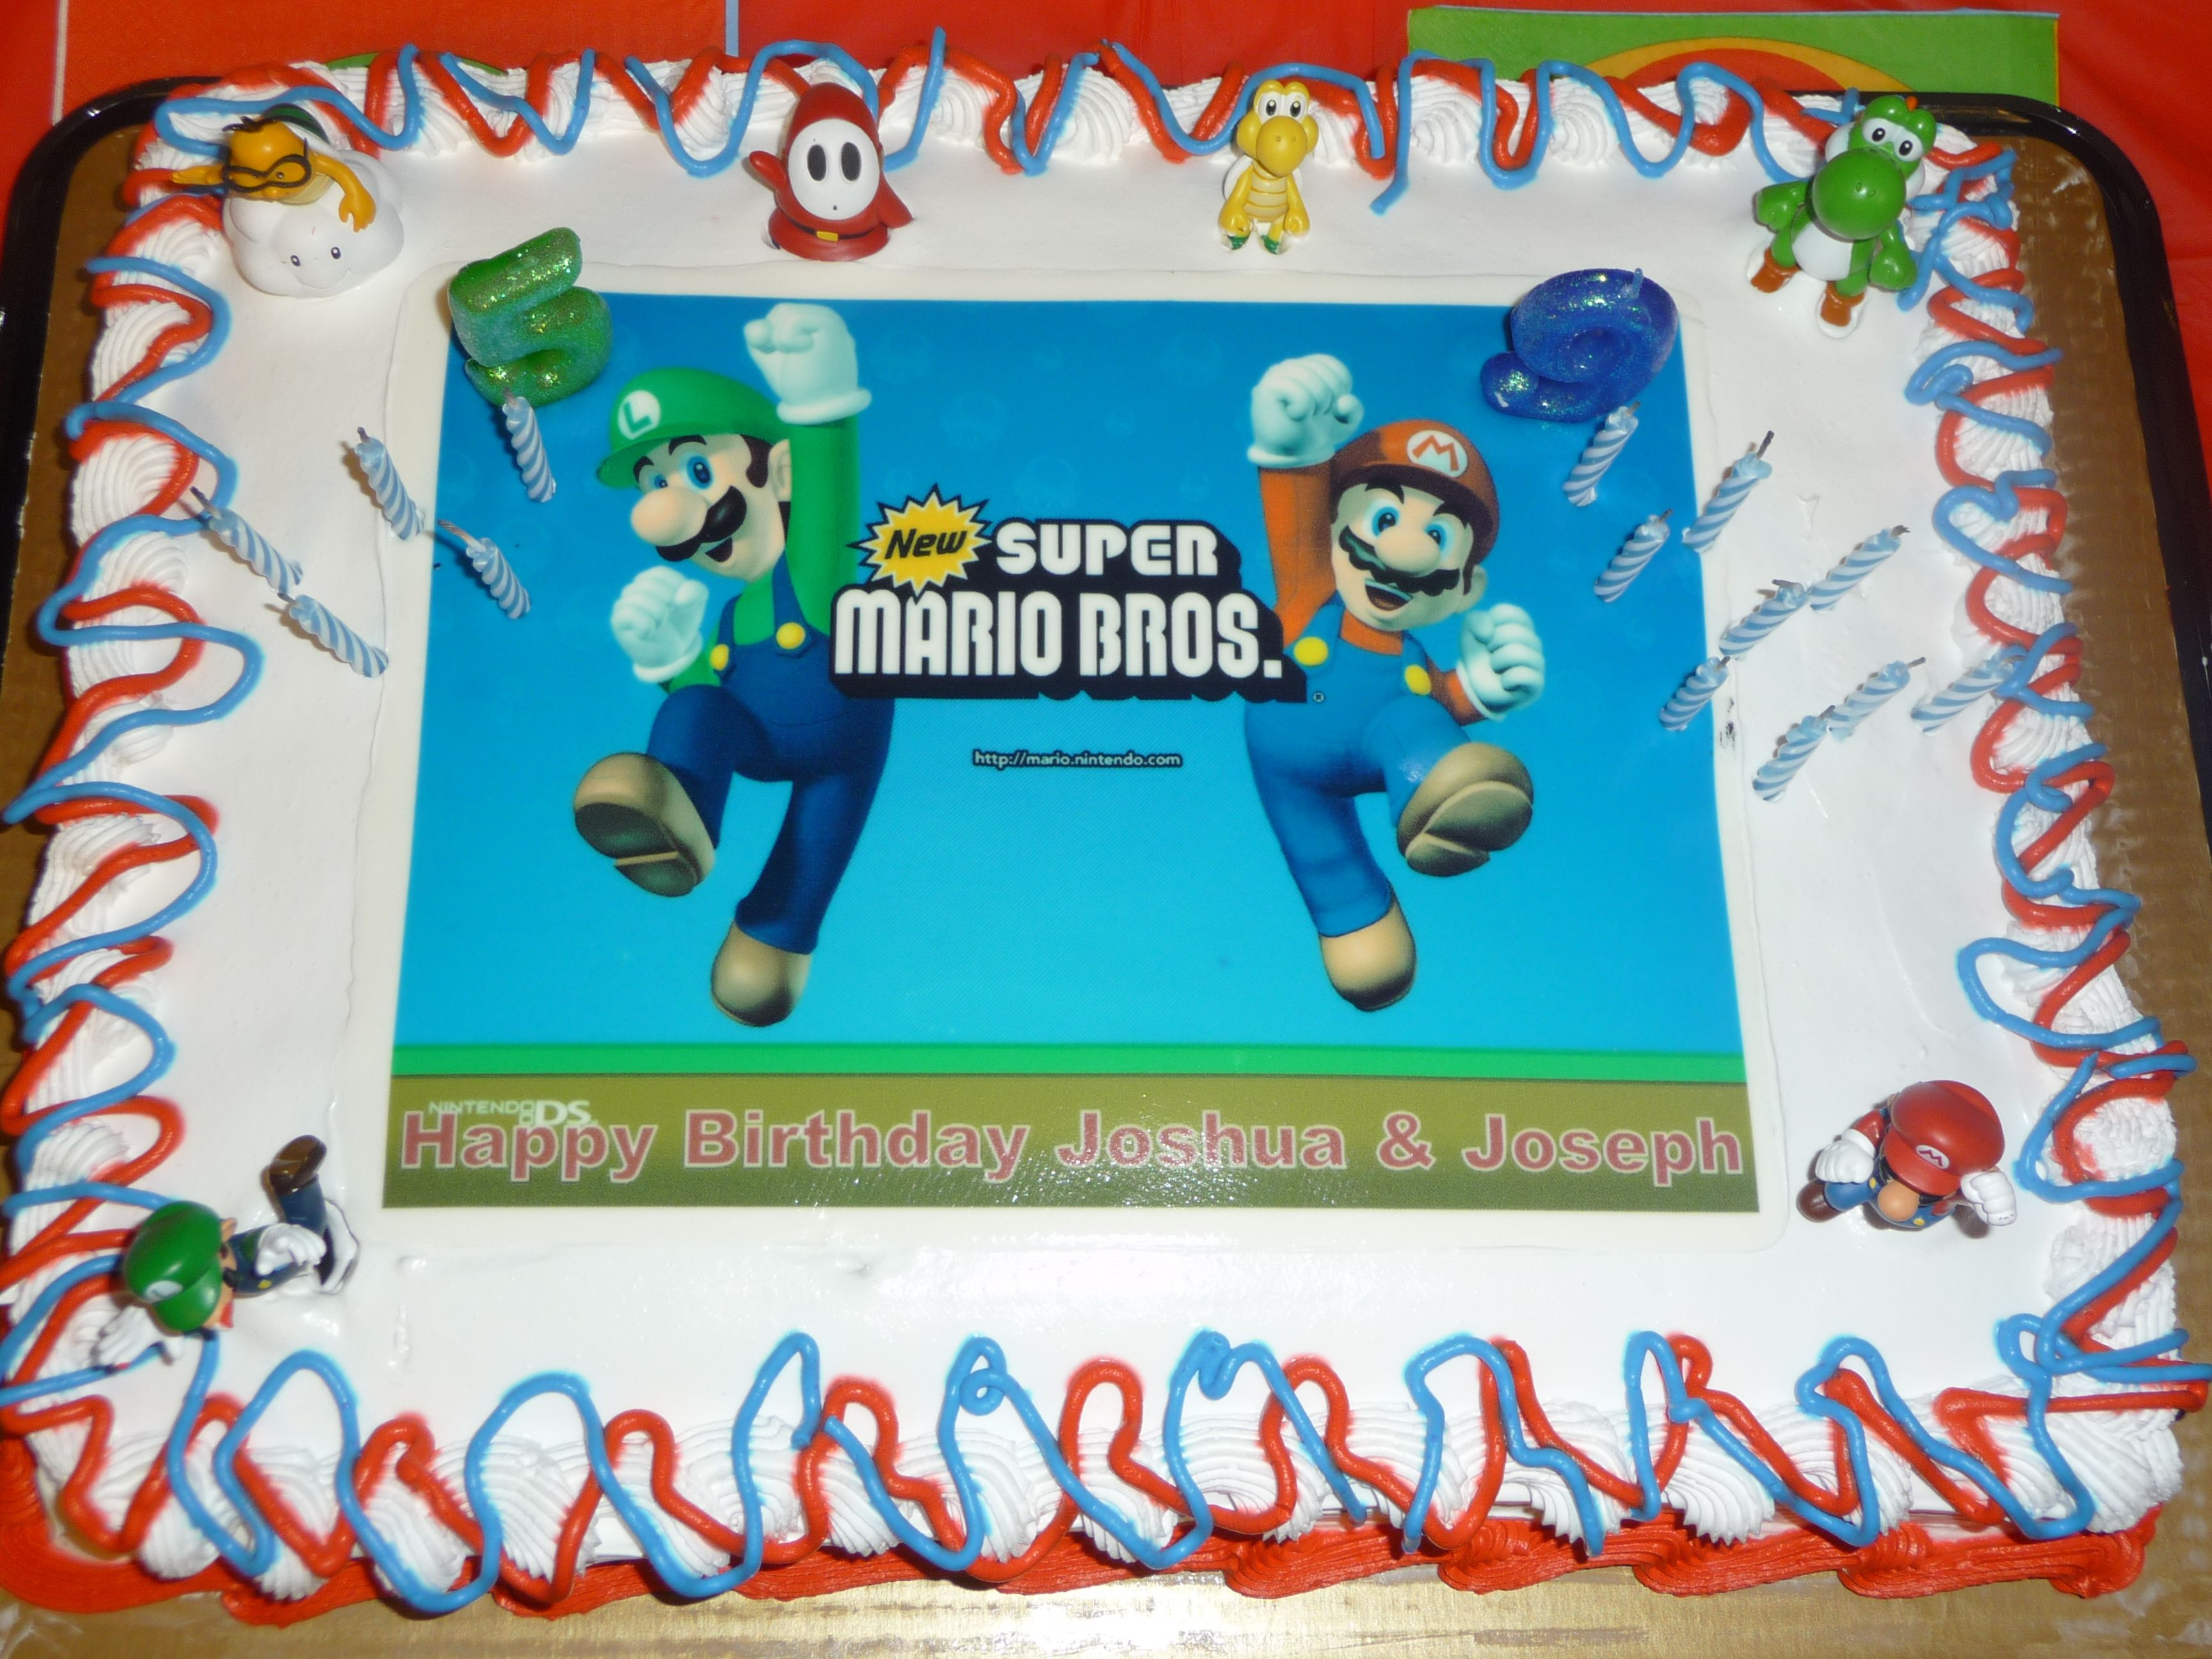 12 Sheet Cake from BJs I bought an edible picture of the Mario